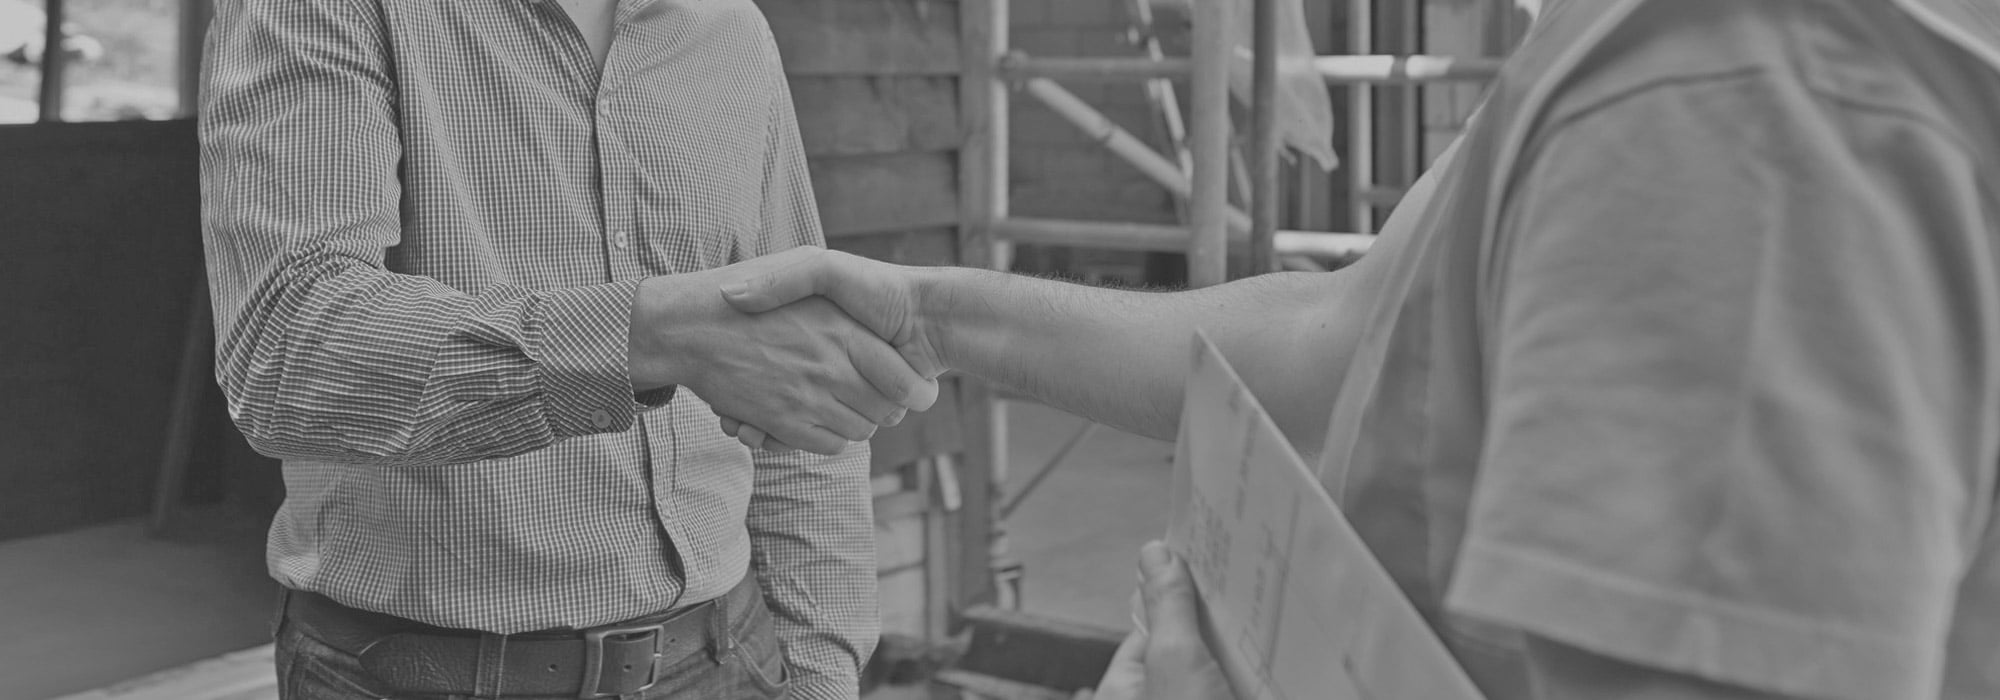 Two people shaking hands with a gray overlay.